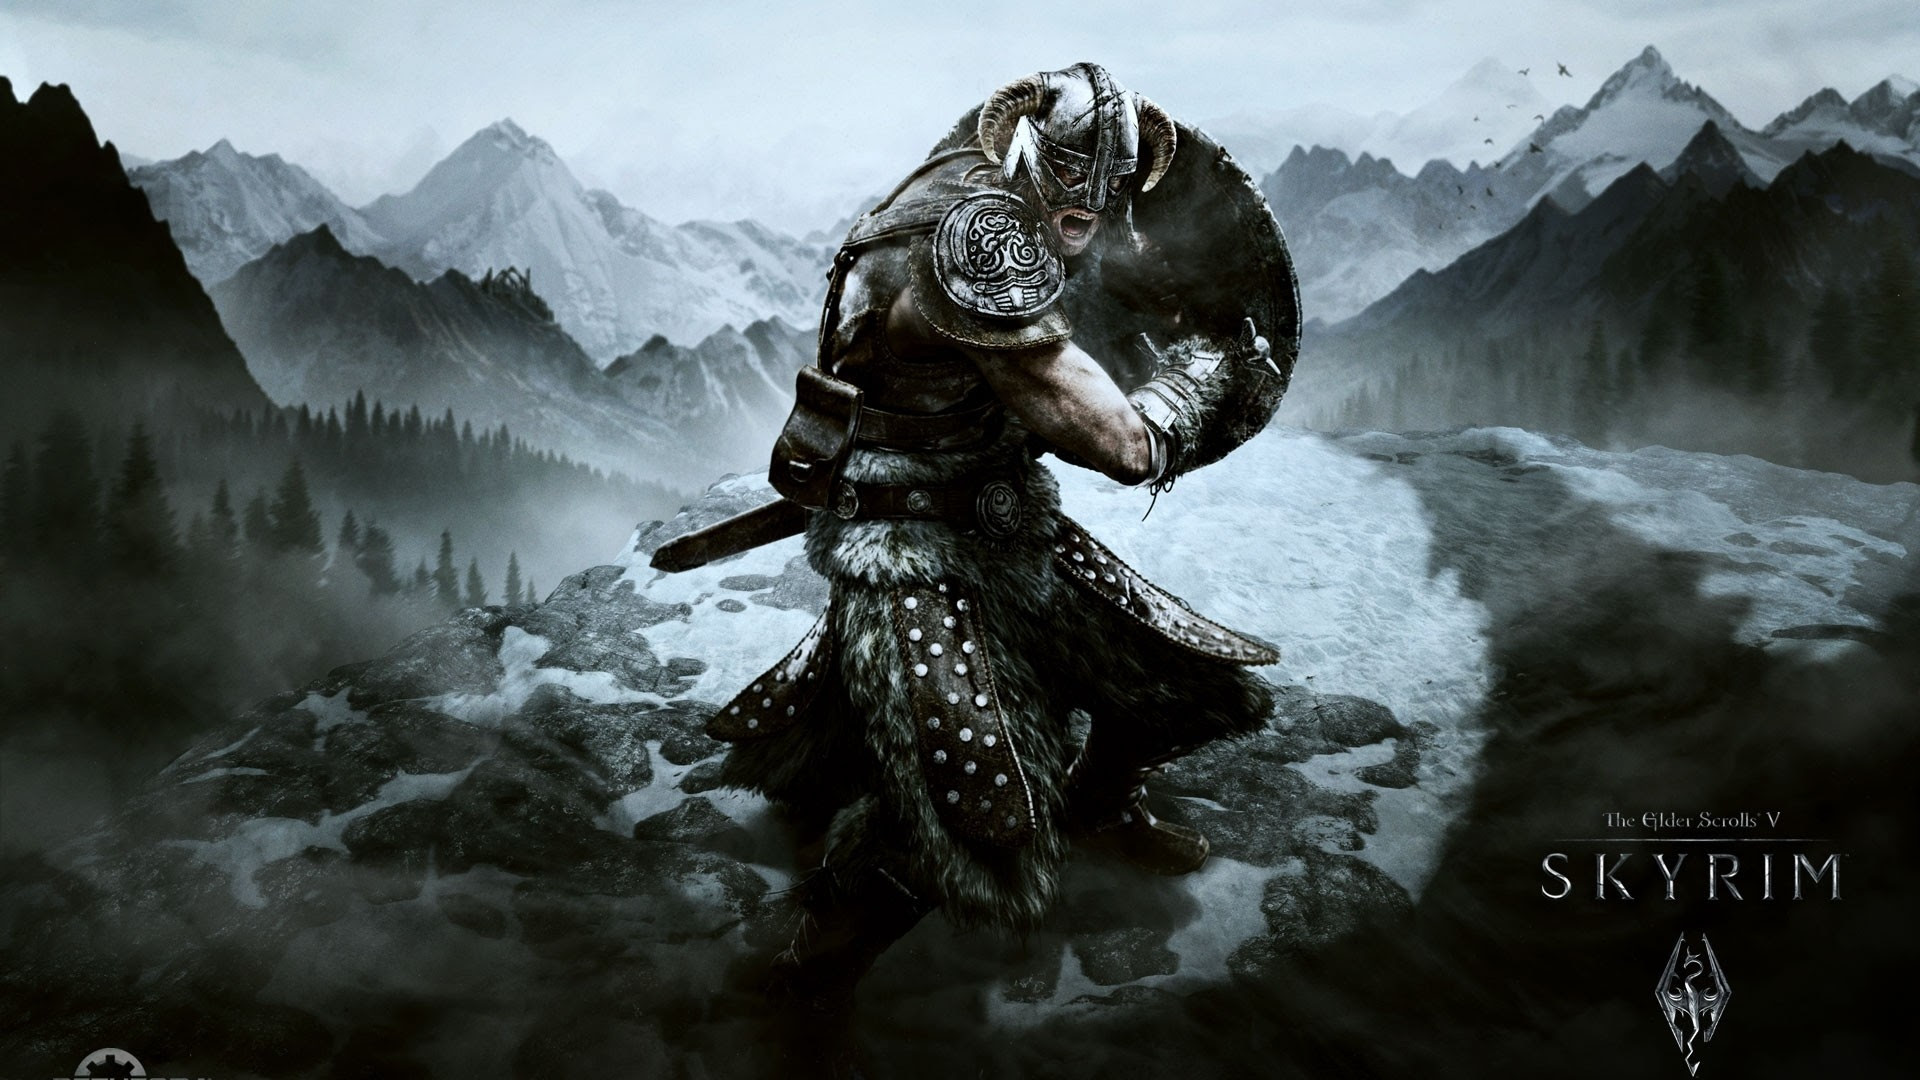 Hd Skyrim Wallpapers 1080p 78 Images